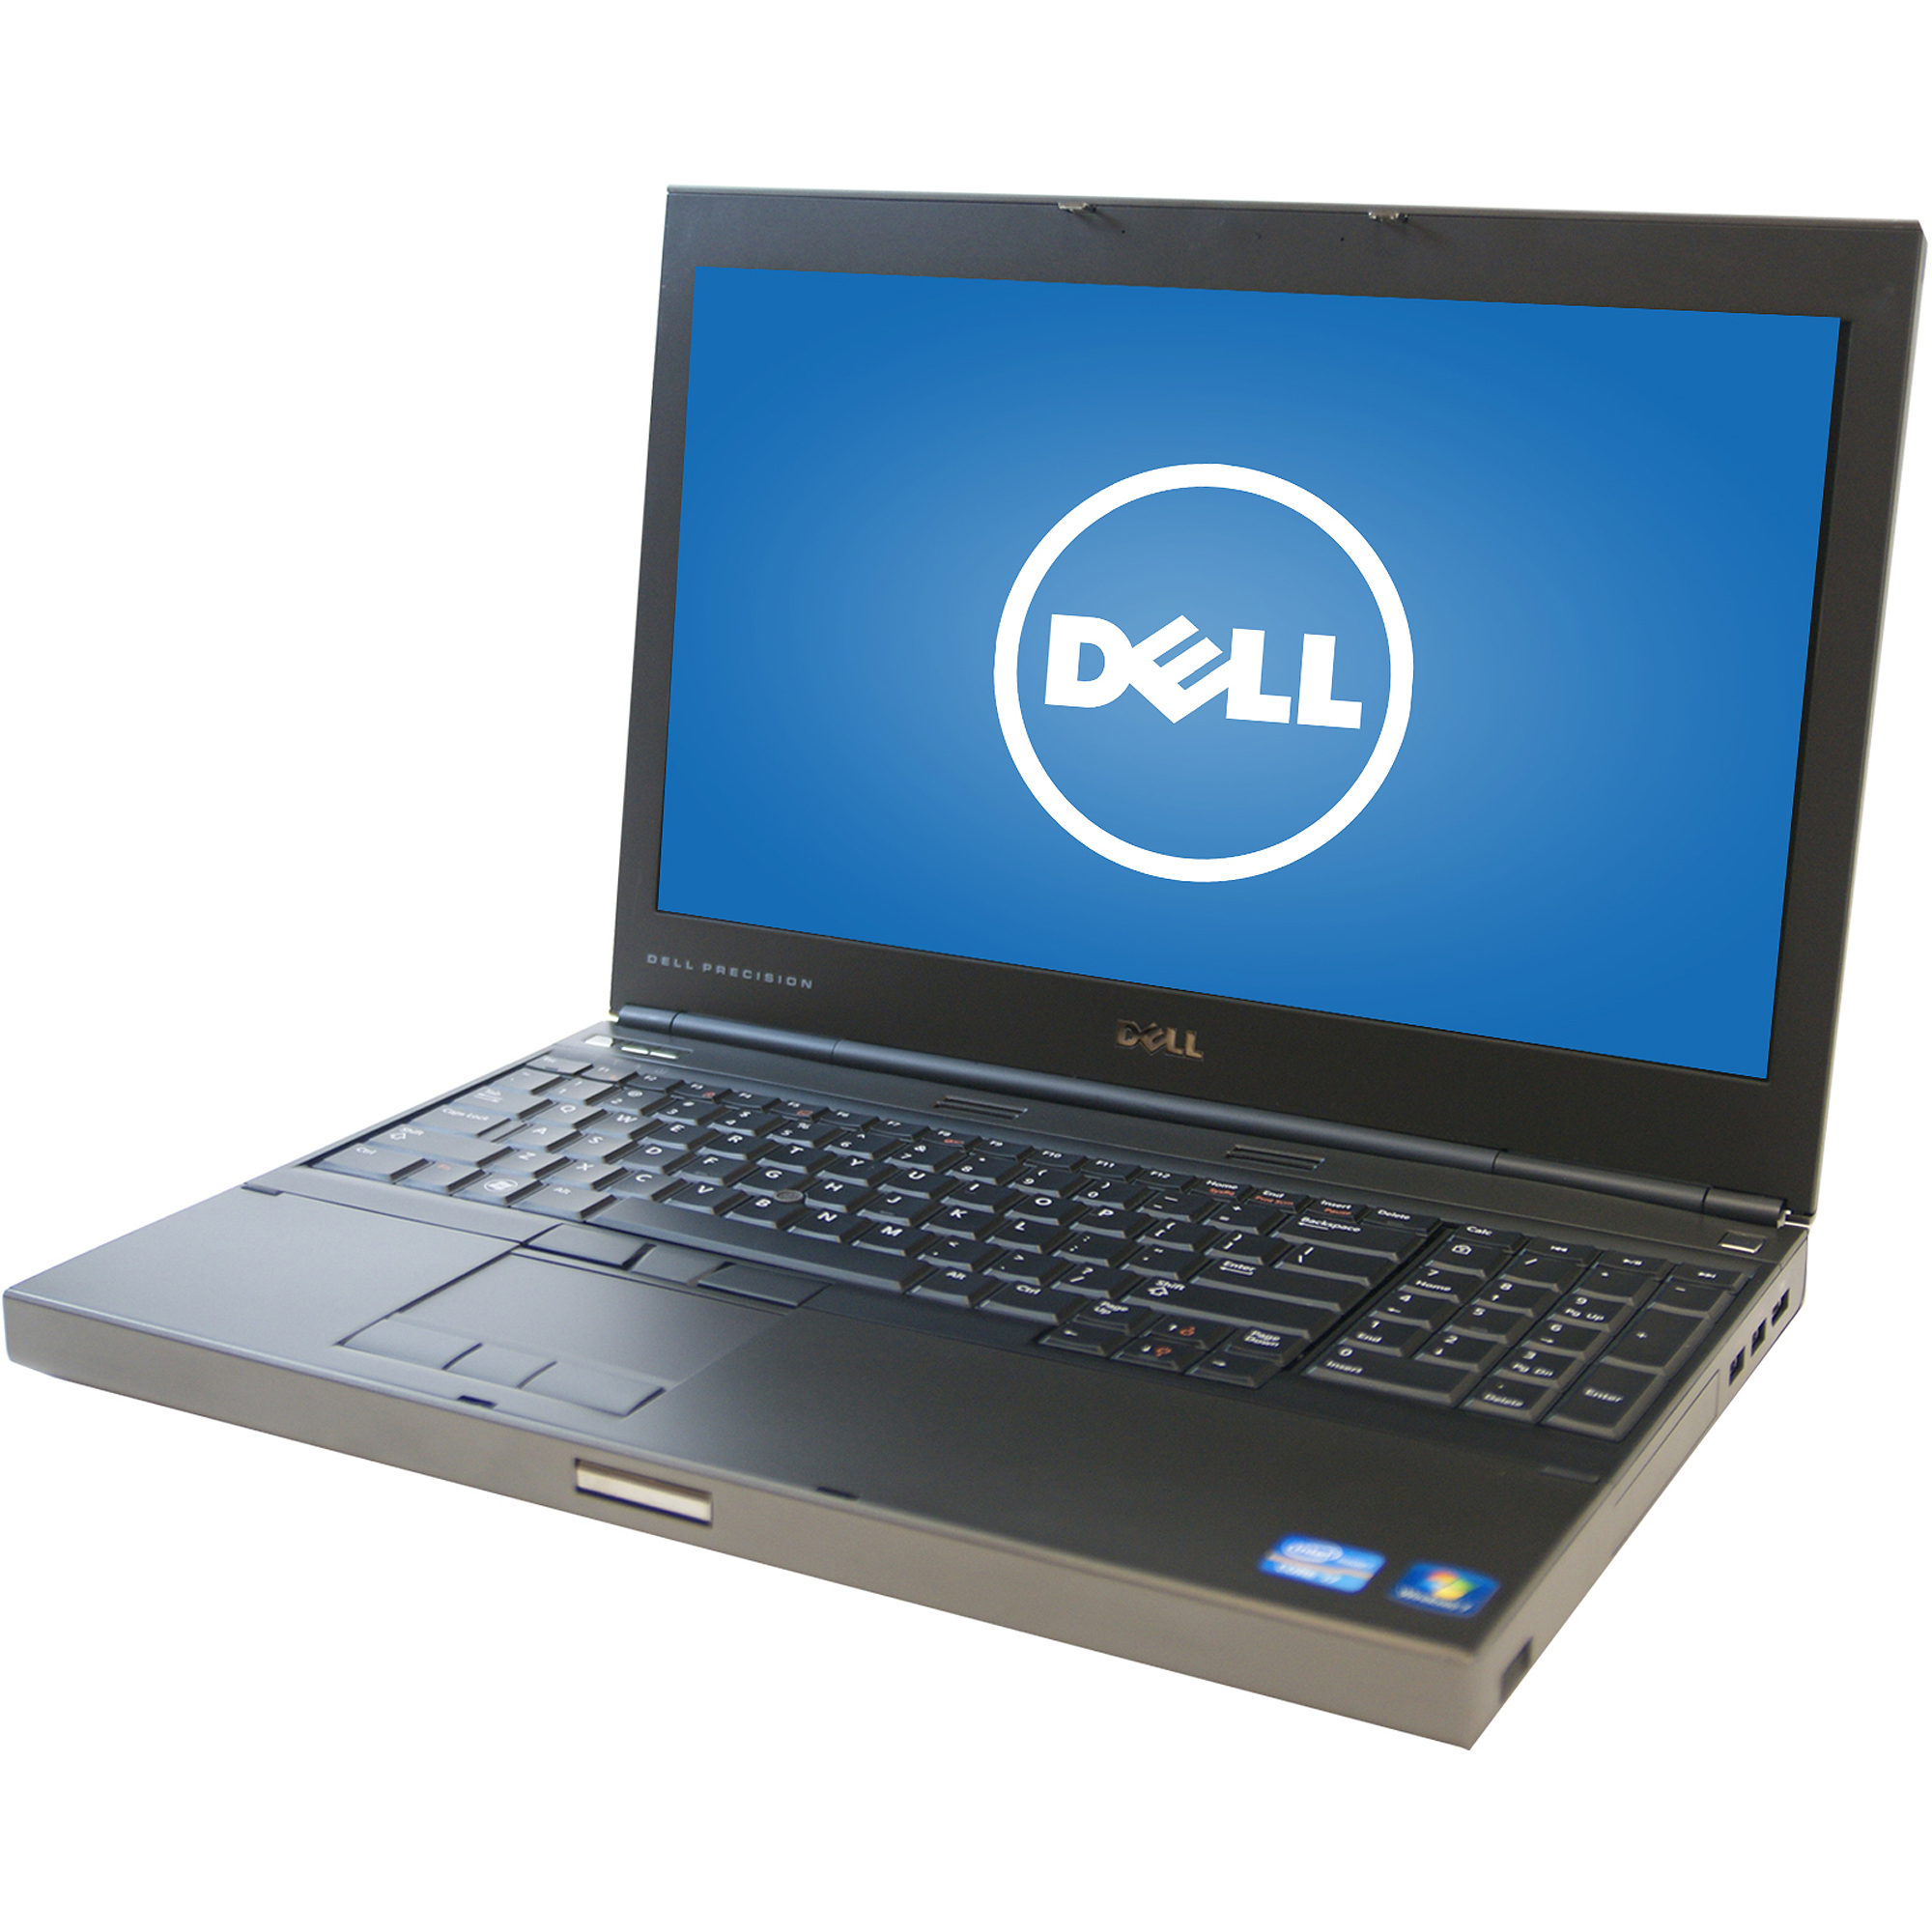 With ample power to handle your everyday tasks, this Dell Latitude E refurbished laptop with a 14